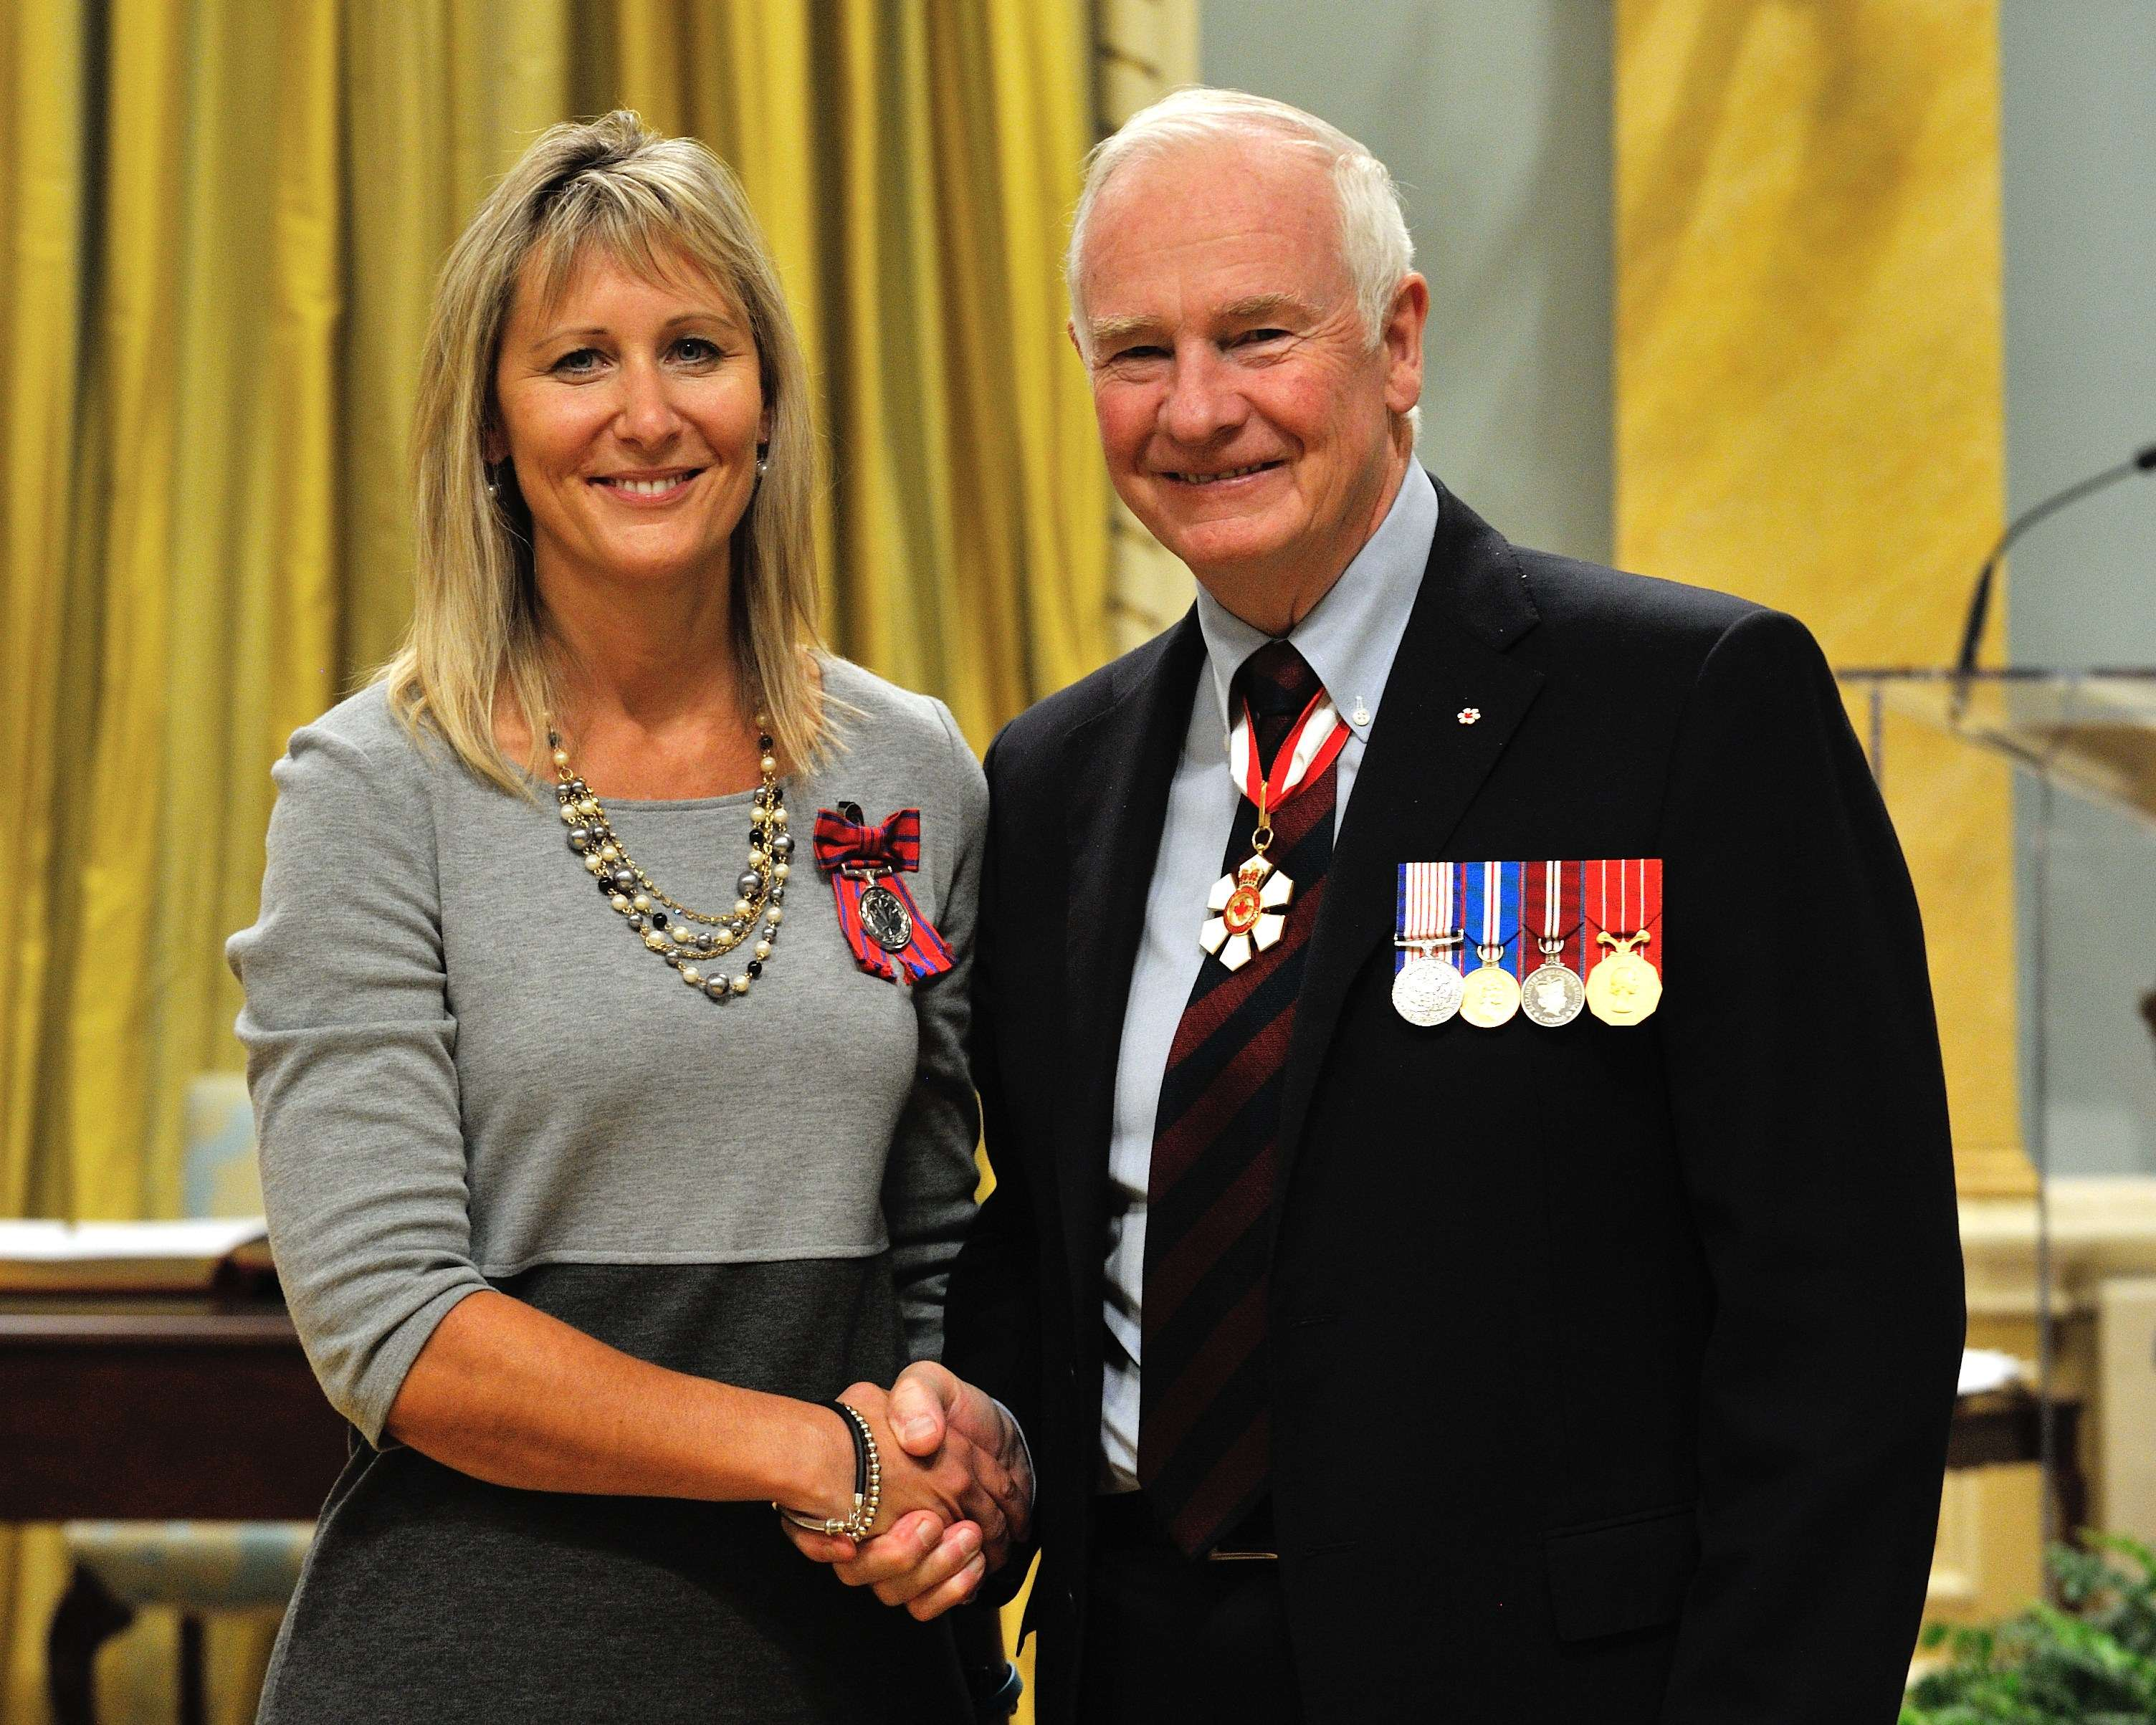 On January 29, 2009, Detective Constable Brad Fraser, of the Victoria Police Department, and Jacqueline Vanderwood (pictured) rescued an injured woman from a damaged vehicle following a head-on collision, near Valemount, British Columbia. Detective Constable Fraser and Ms. Vanderwood were driving by when they spotted the wrecked cars: smoke billowed from the engines and fuel leaked onto the pavement. The occupants of the first vehicle had not survived the collision, but the three passengers in the second car were still alive. While other passersby pried open the front doors to retrieve the driver and front passenger, Detective Constable Fraser crawled through a small opening of the rear door to reach a woman in the back seat. Fearing that the fuel could catch fire at any moment, Detective Constable Fraser quickly untied the woman's seat belt and, with the help of Ms. Vanderwood, carried her to safety. All three victims of the second vehicle survived.